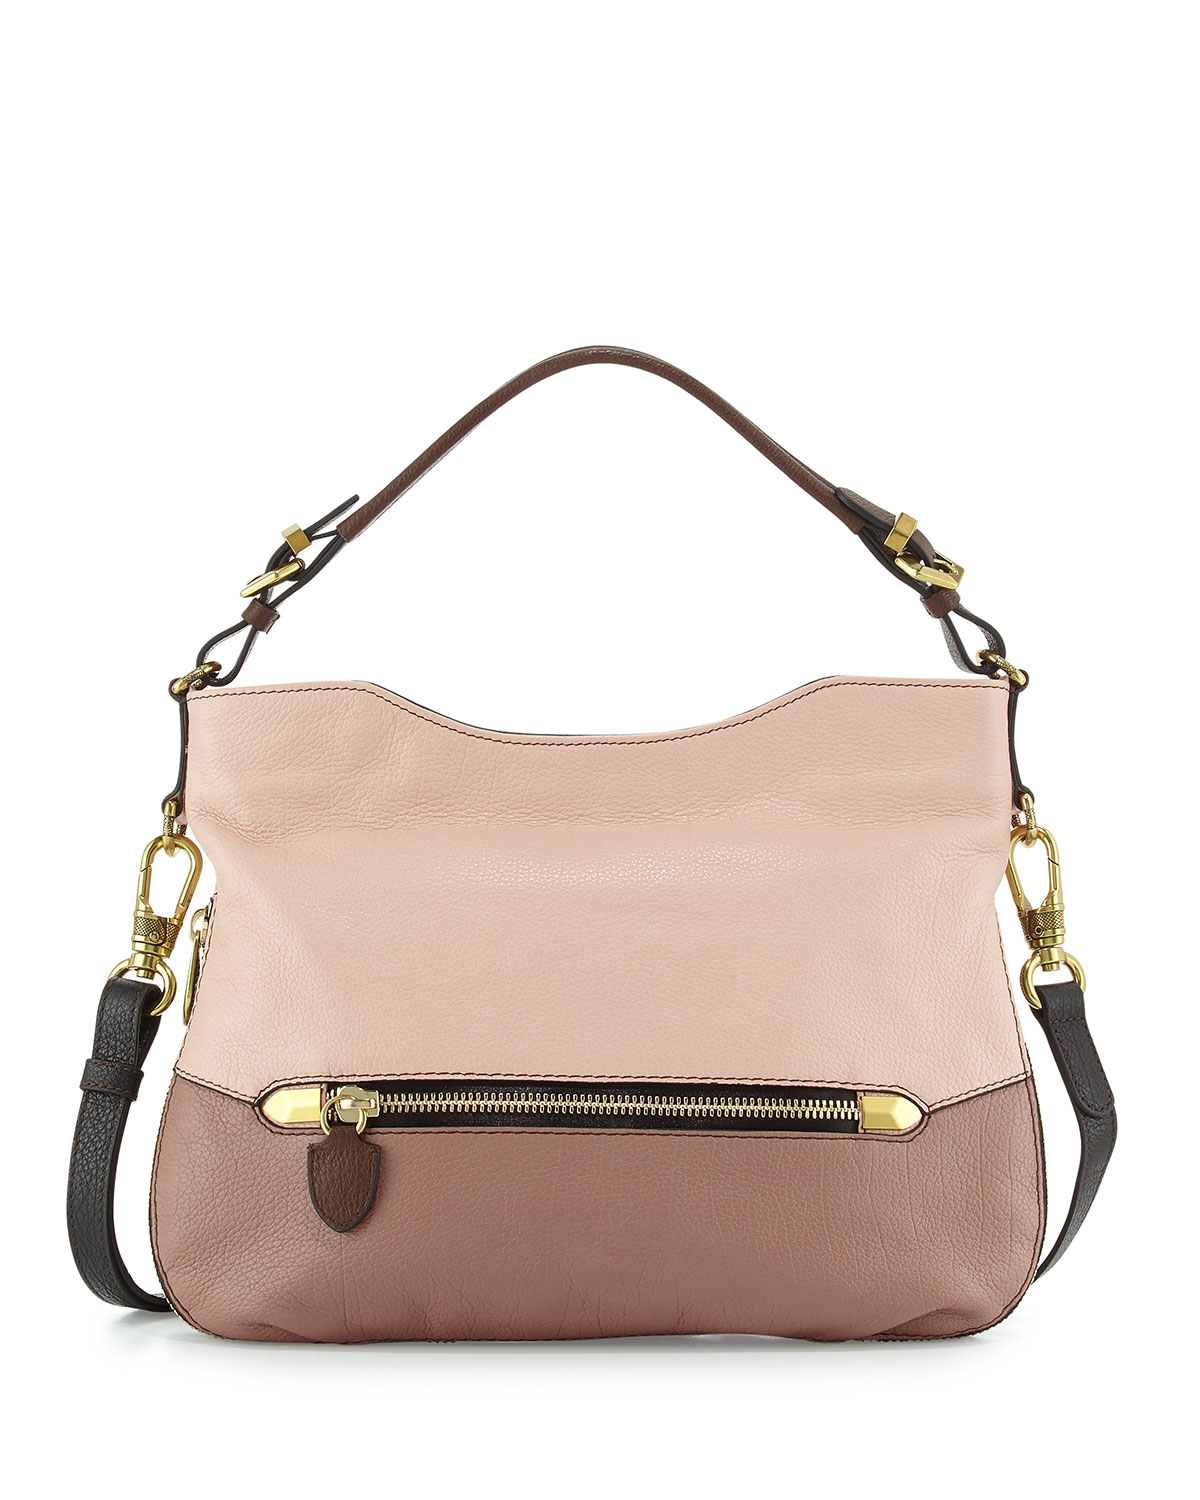 Oryany Ellie Leather Hobo Bag in Pink | Lyst